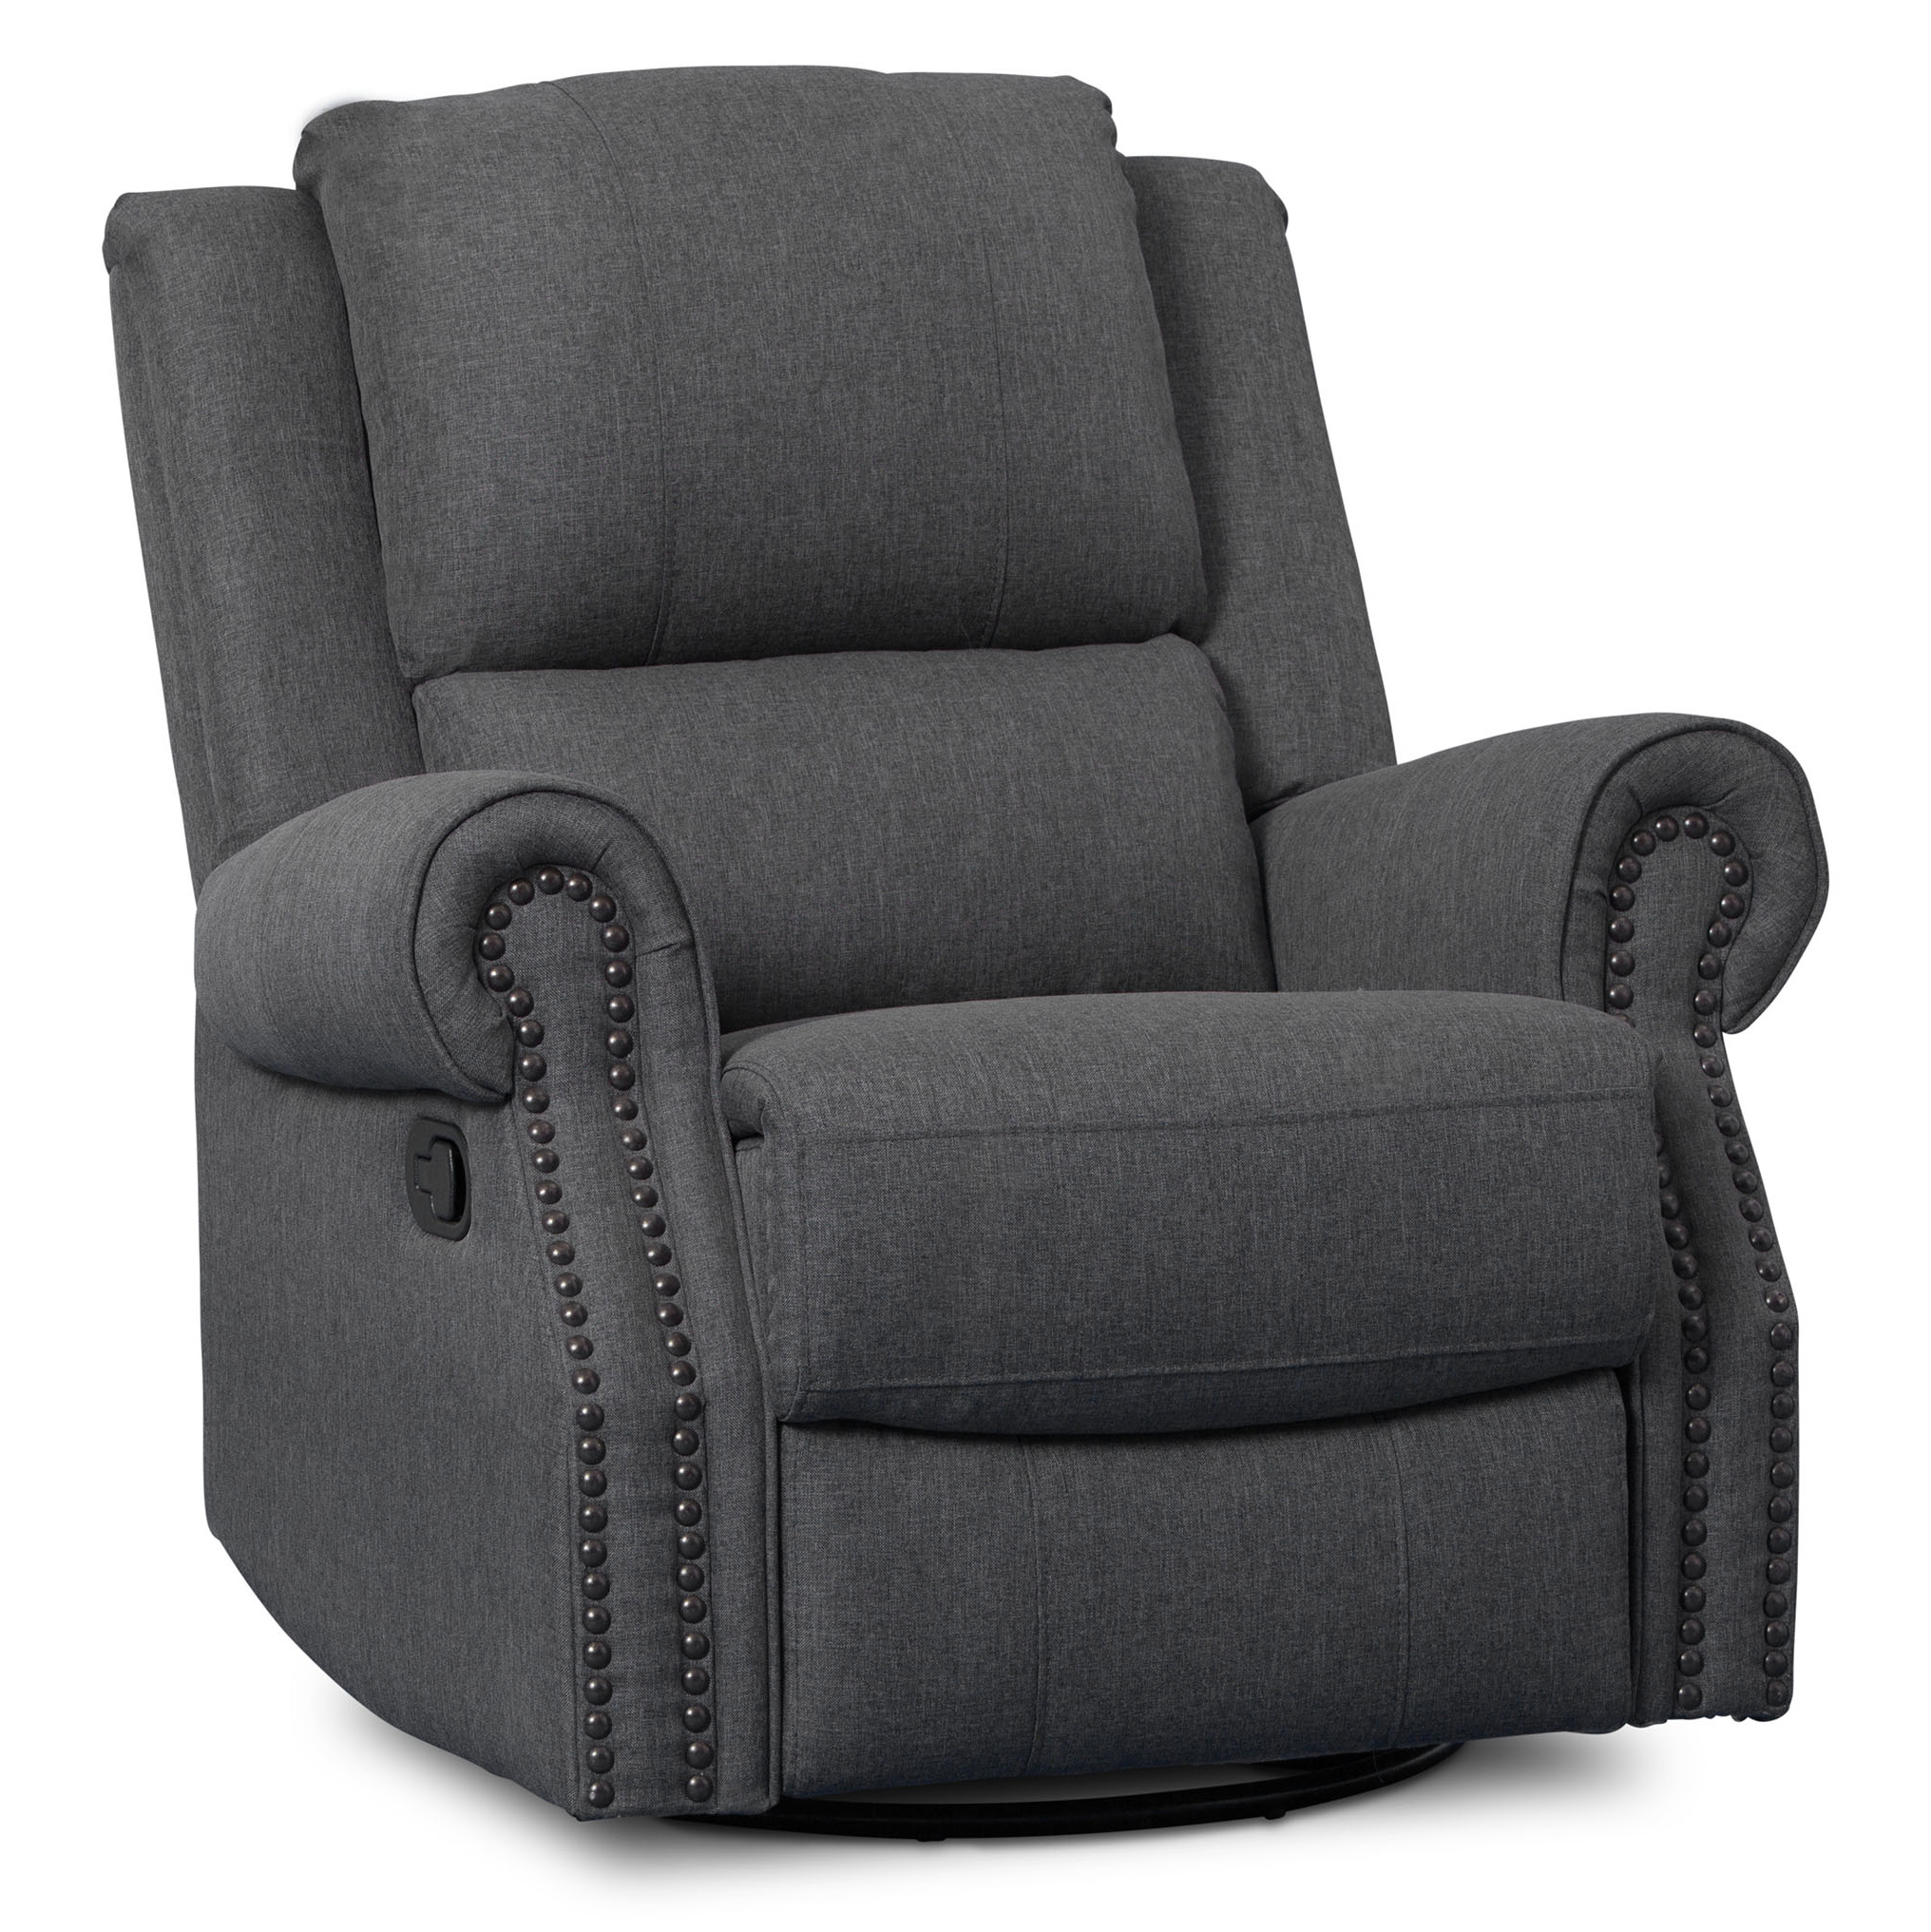 Delta Children Drake Nursery Glider Swivel Recliner, Charcoal by Delta Children